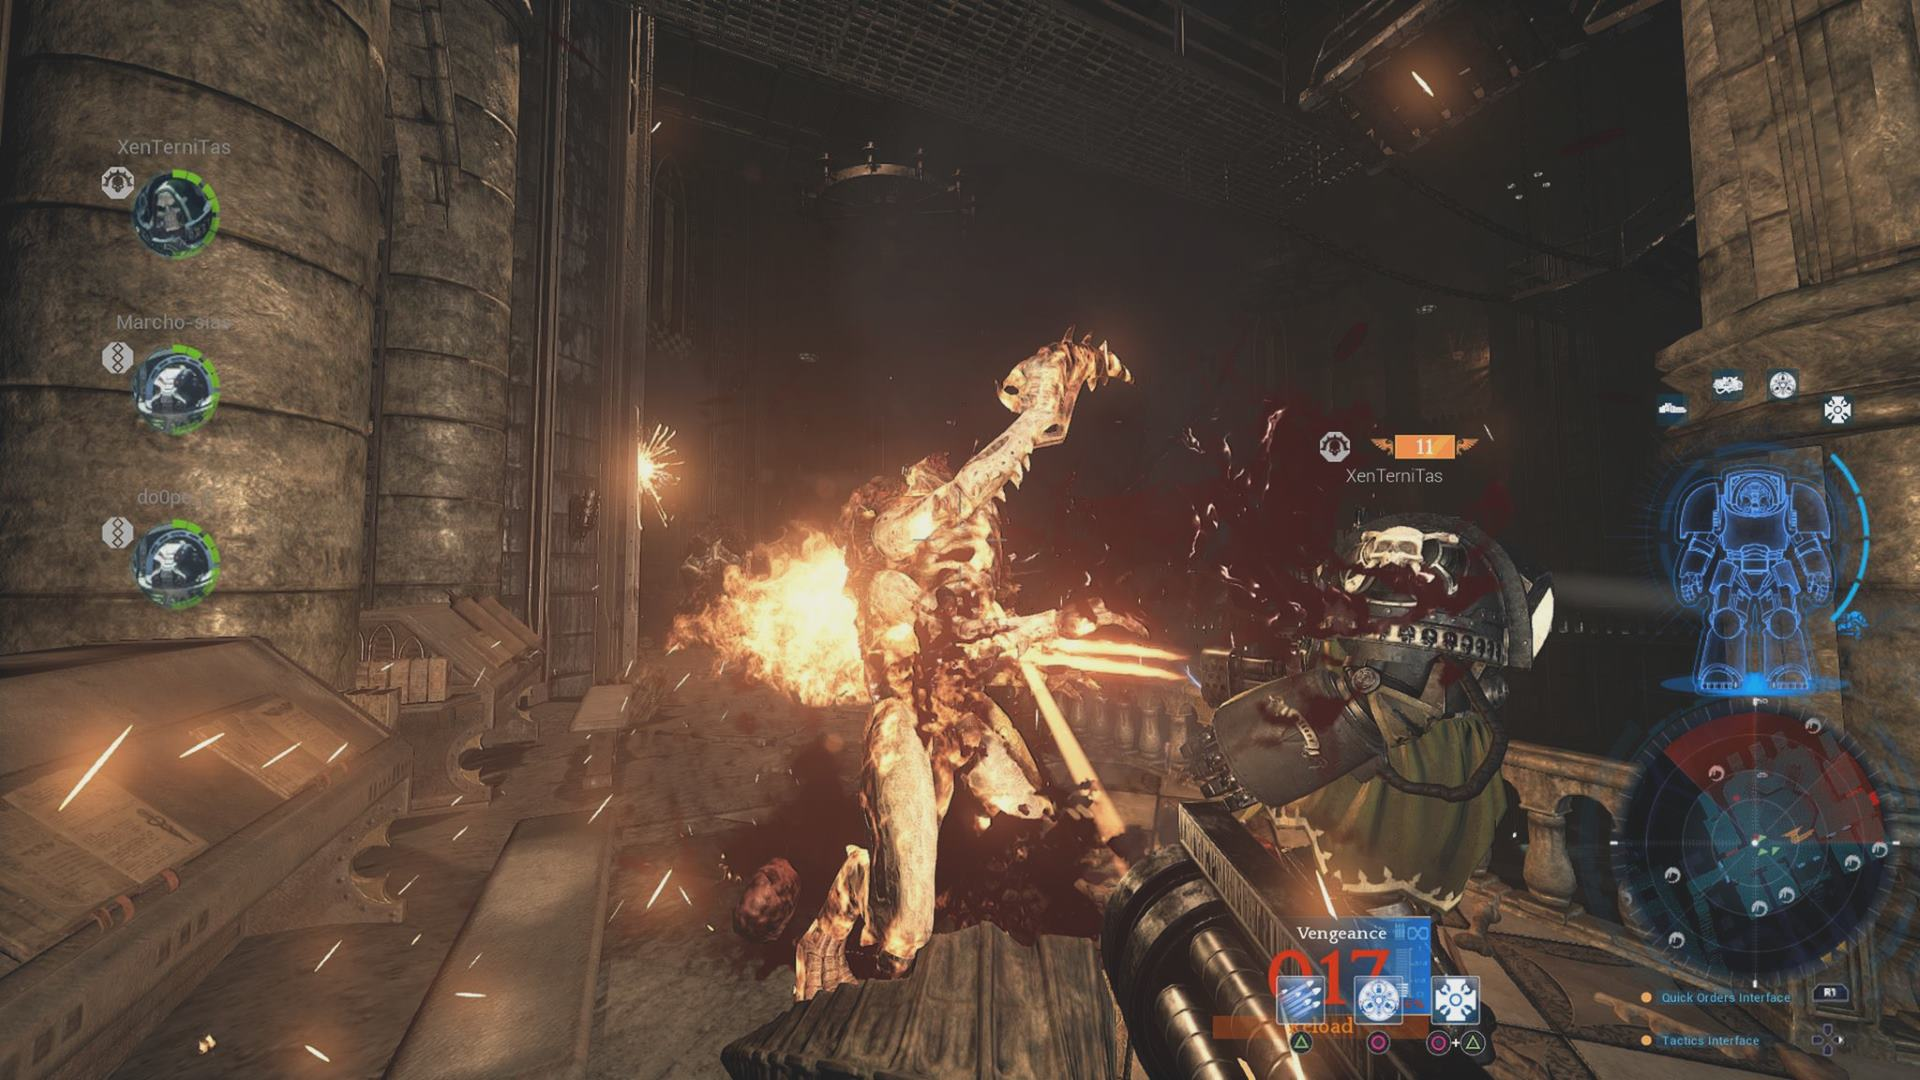 analisis de space hulk deathwing enhanced edition 2